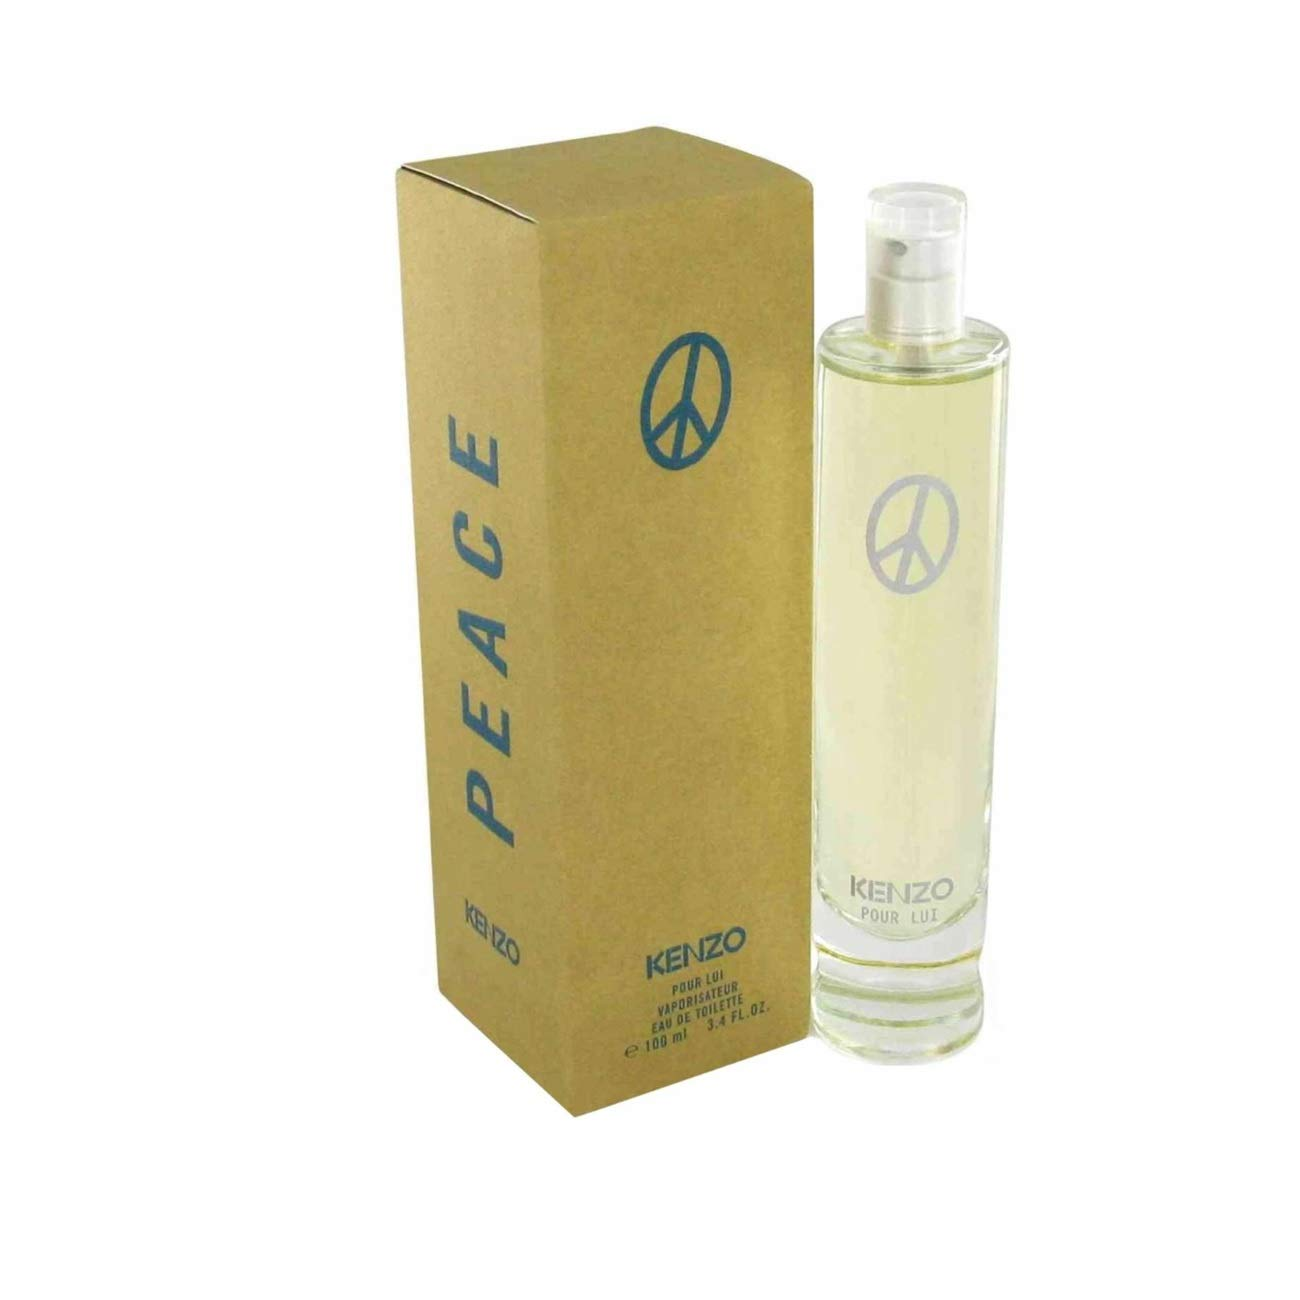 B0001BOQOE Time For Peace by Kenzo for Men. 3.4 Oz Eau De Toilette Spray 51iTCJjBsEL._SL1300_